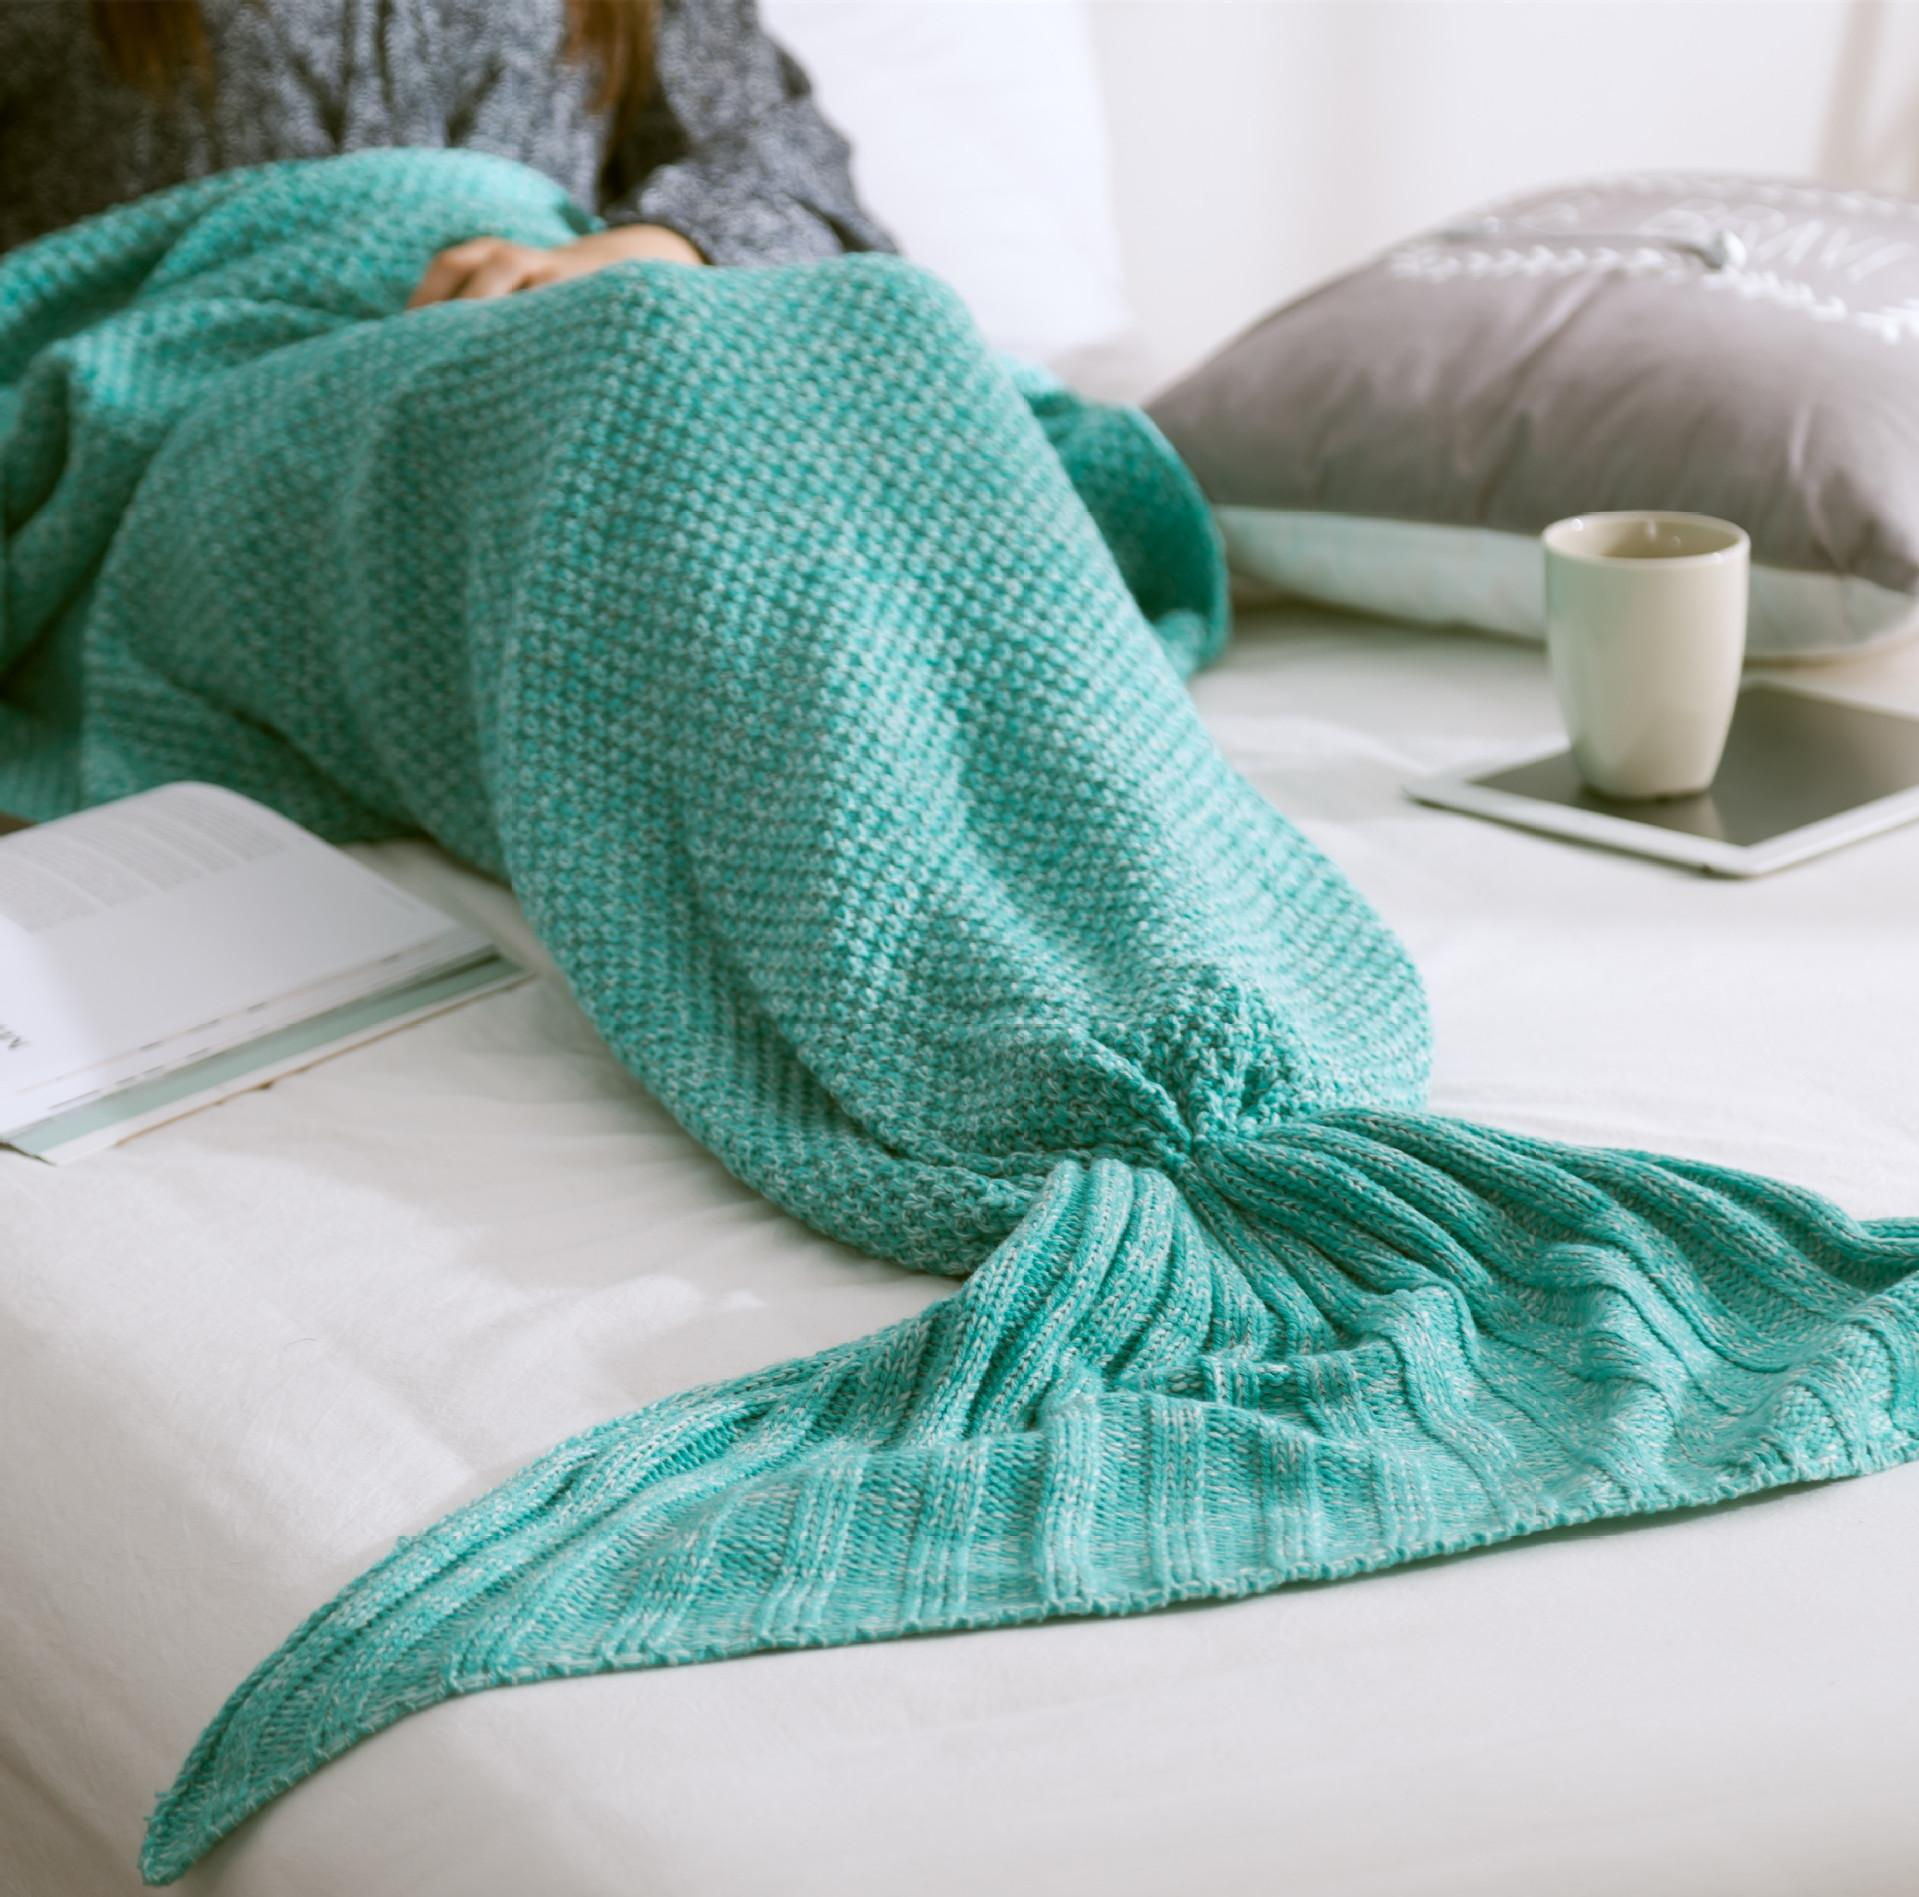 Knitted Mermaid Tail Blanket Pattern Free Simple Decorating